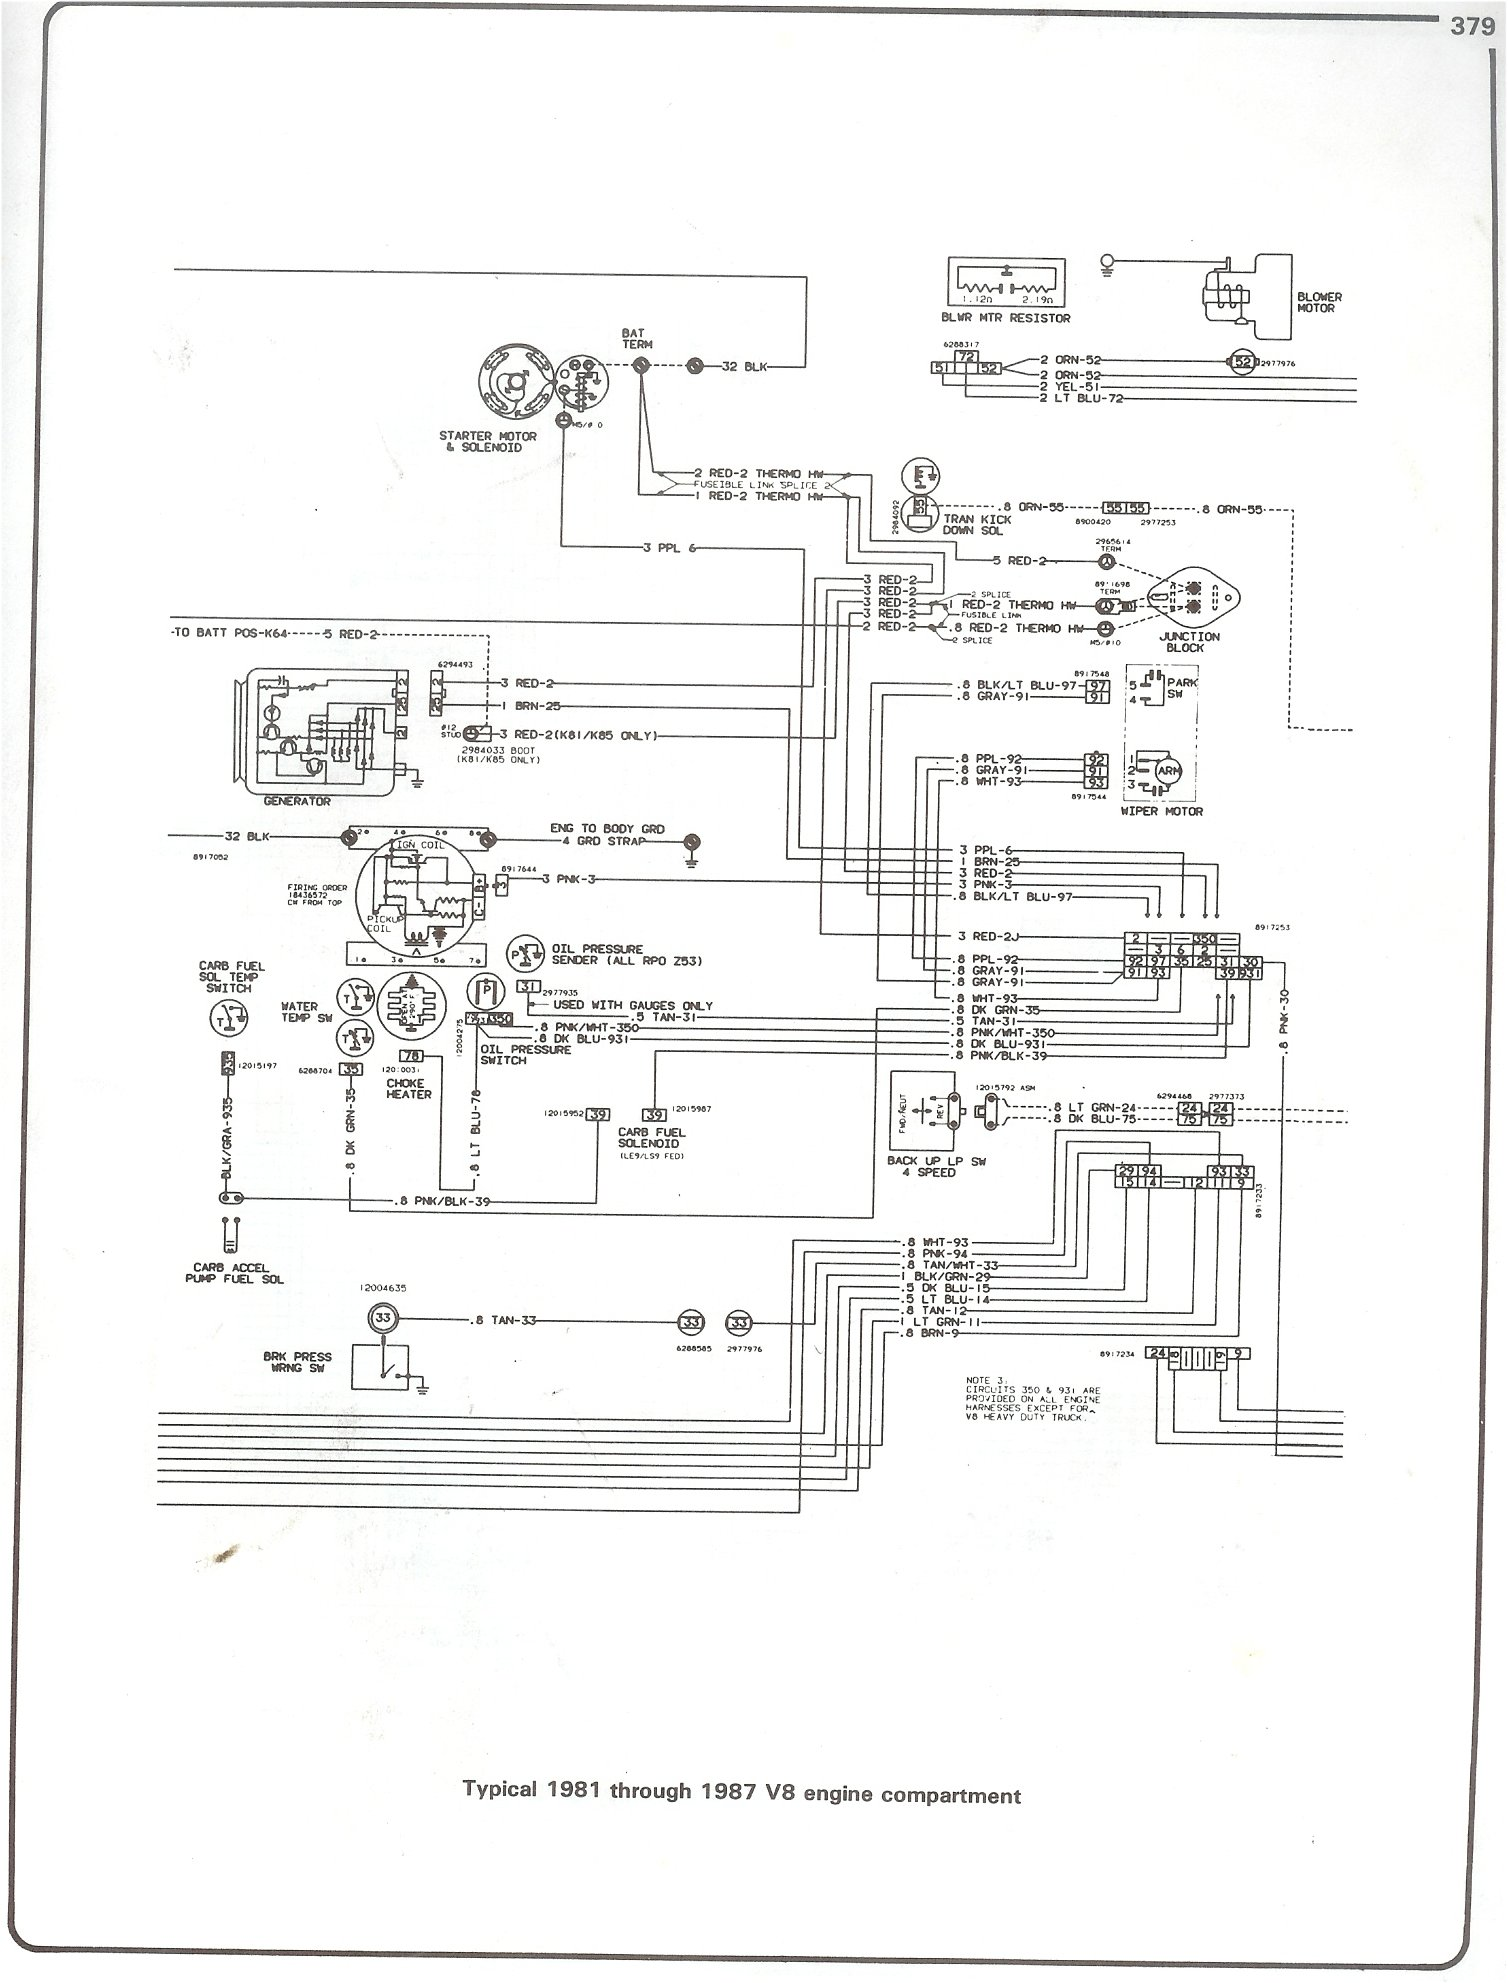 1989 chevrolet chevy s 10 truck electrical diagnosis and wiring diagrams manual s t truck models